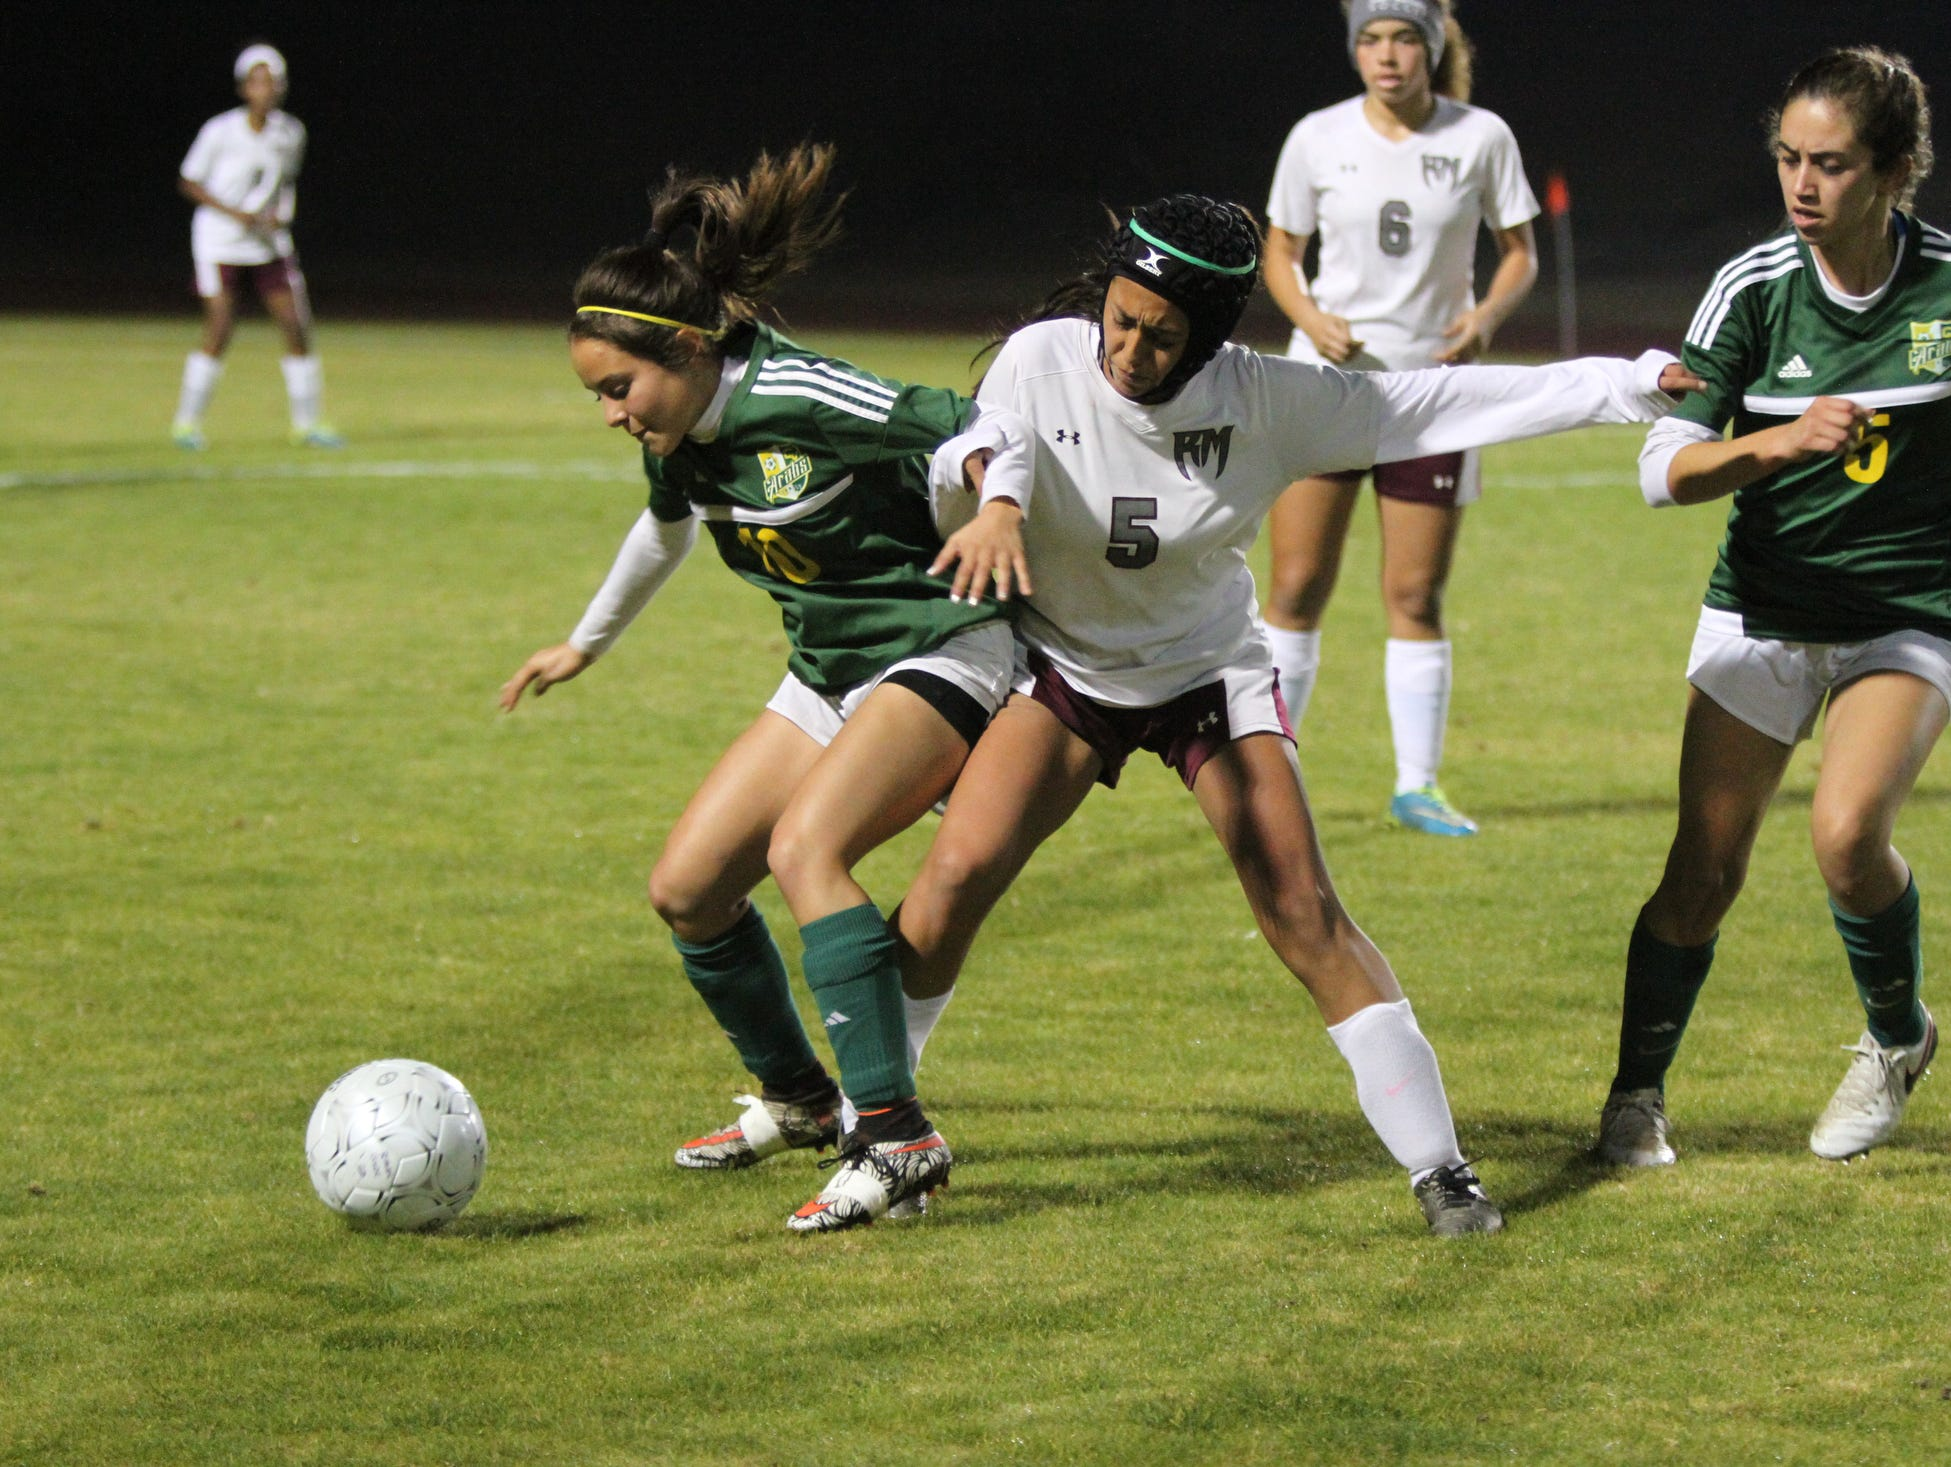 Coachella Valley's Brianda Rios, left, and Rancho Mirage's Caitlin Estrin battle for the ball during the game in Rancho Mirage on Thursday, January 19, 2017. Rancho Mirage won.